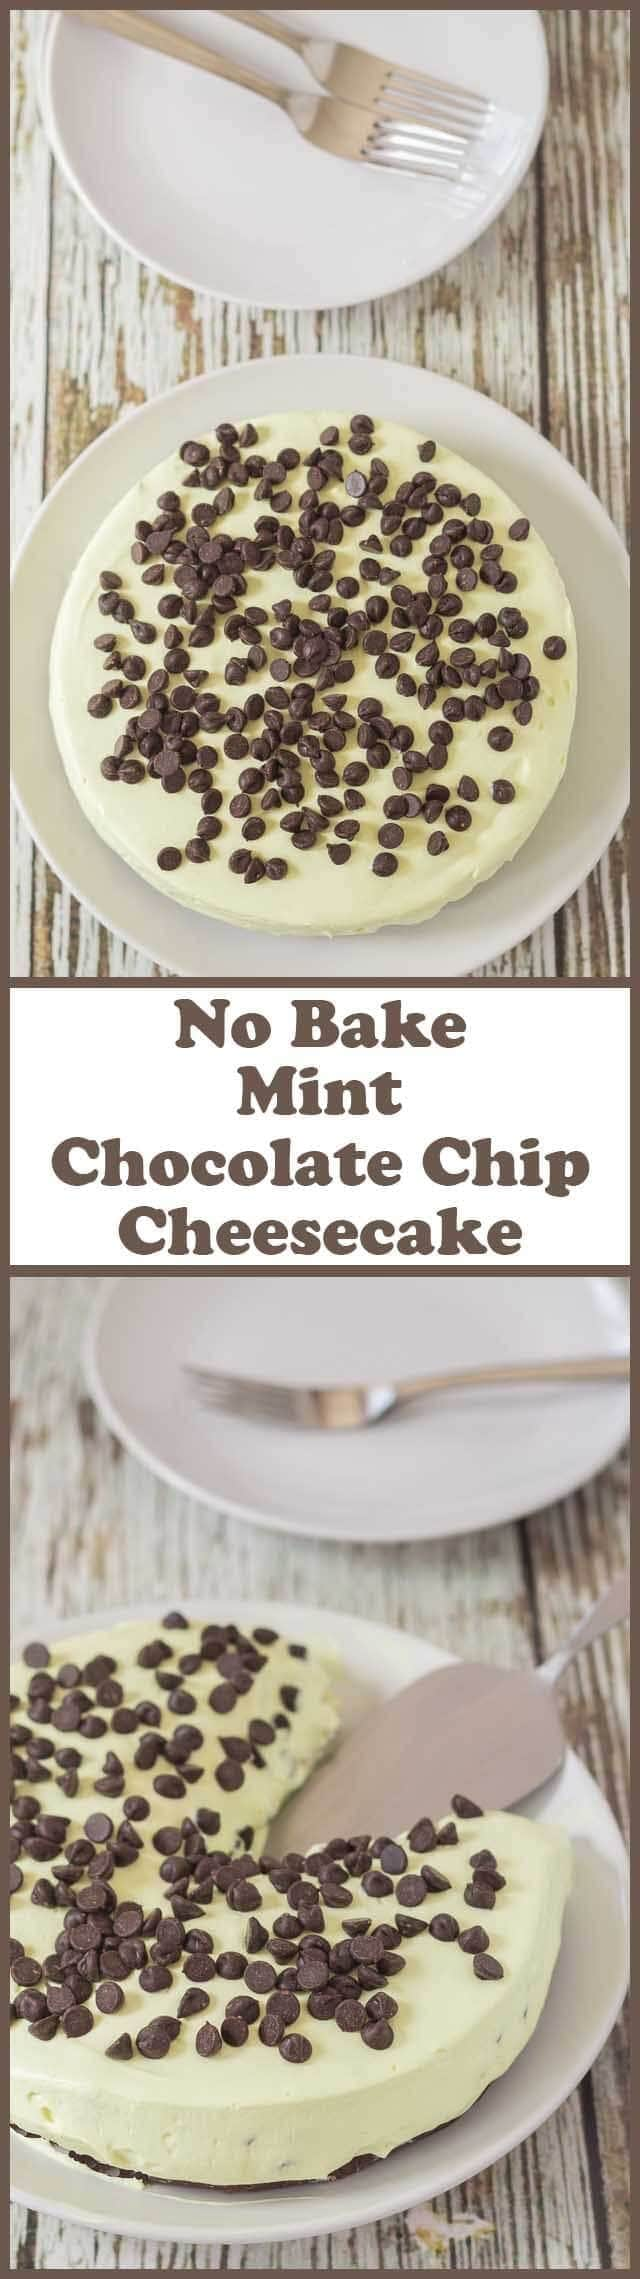 This no bake mint chocolate chip cheesecake tastes just like mint chocolate chip ice cream. It's delicious, decadent and creamy tasting and you will not be disappointed!